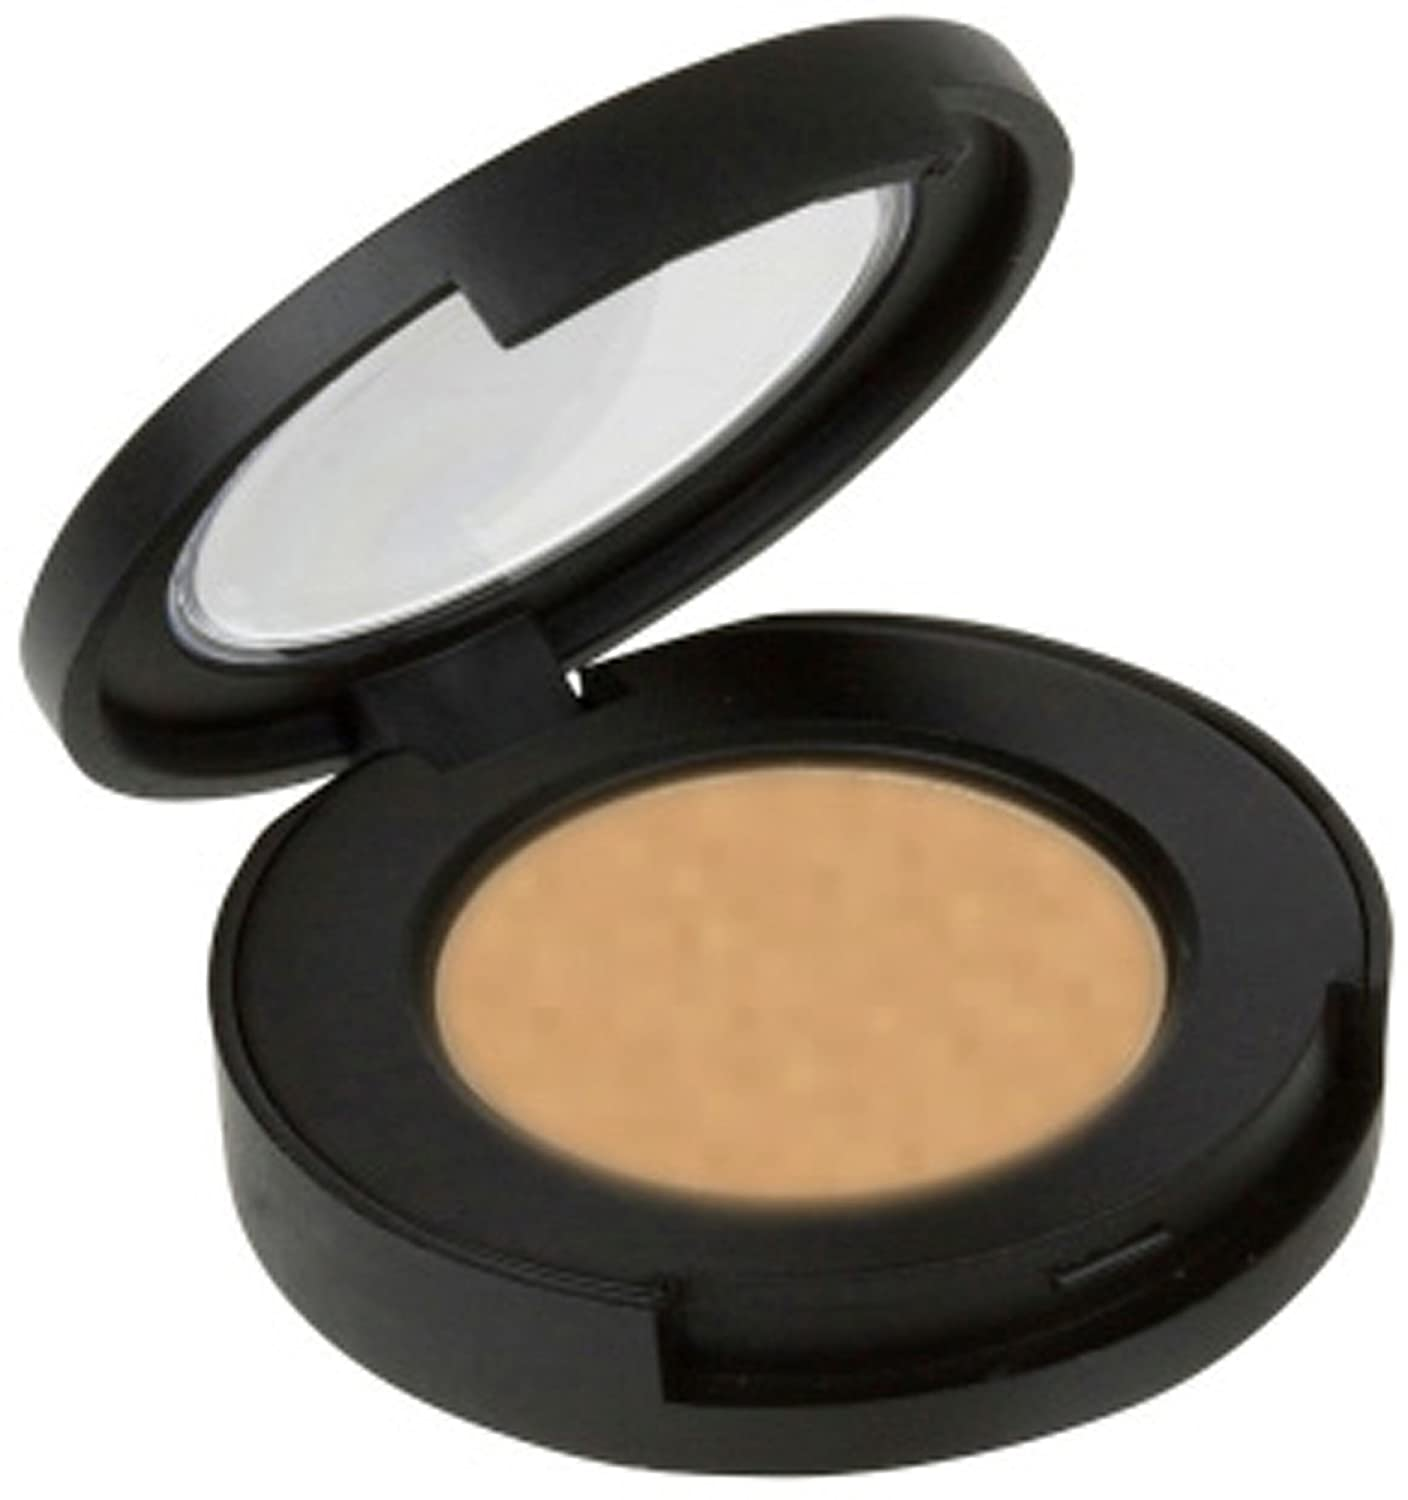 Mineral Eyeshadow - Butterscotch #421 - Formulation and Foundation of Natural Minerals/Powder - Shades/Magic Finish to Apply and Grace Your Face. By Jill Kirsh Color, Hollywoods Guru of Hue